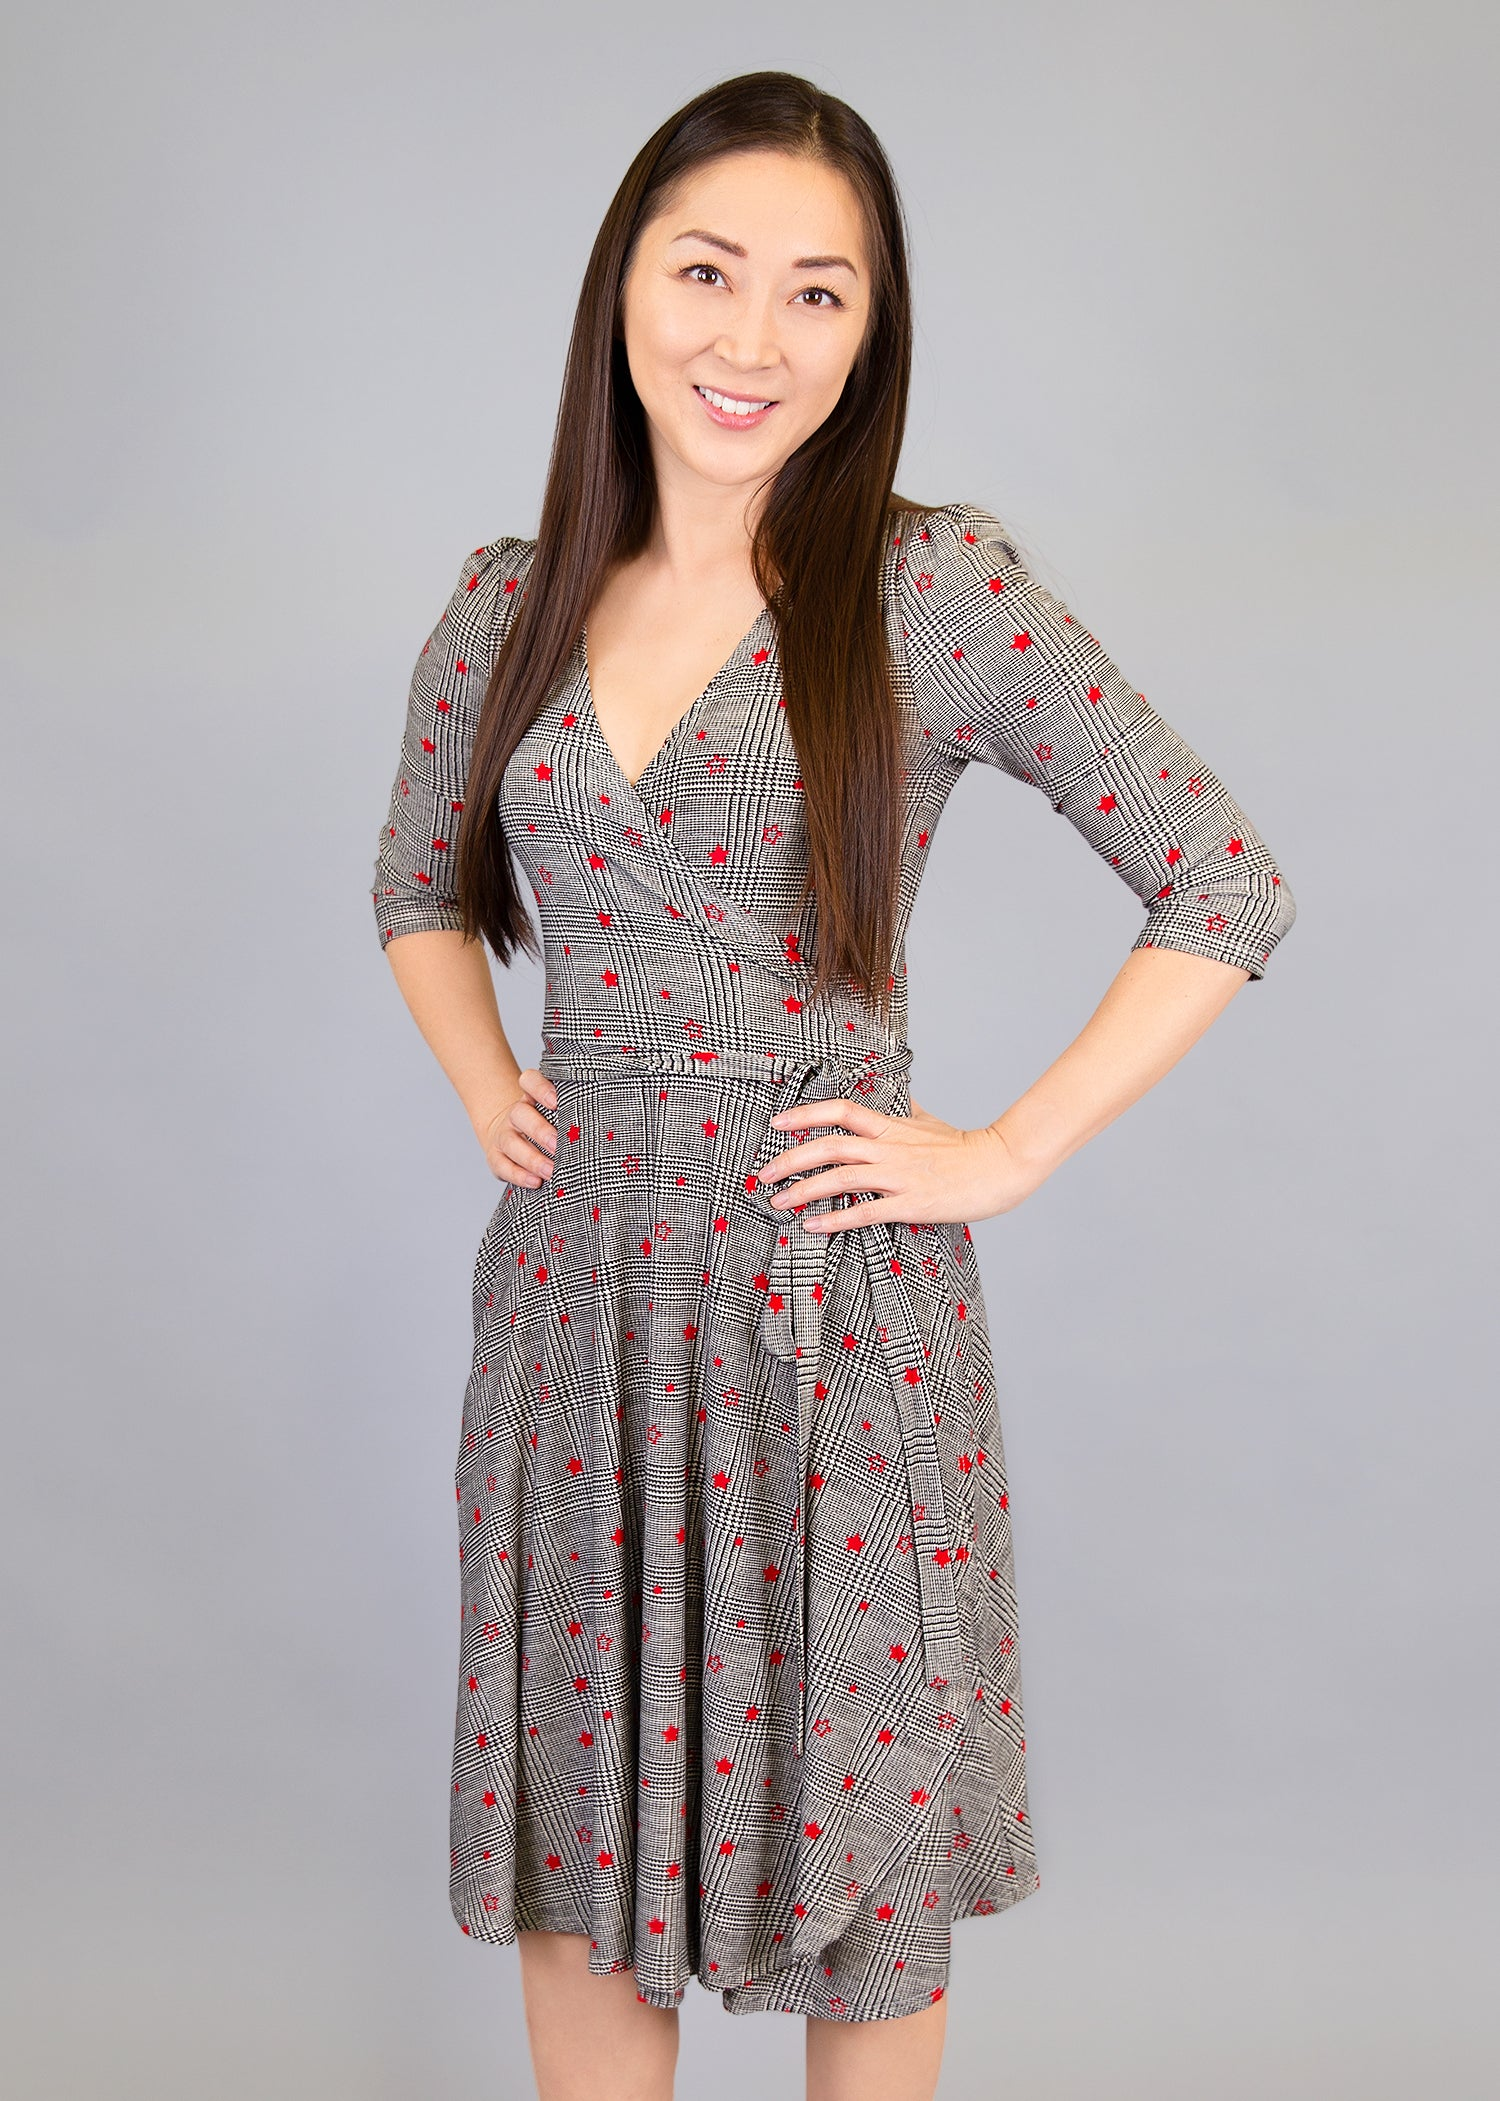 Petunia Wrap Dress in Prints and Solids